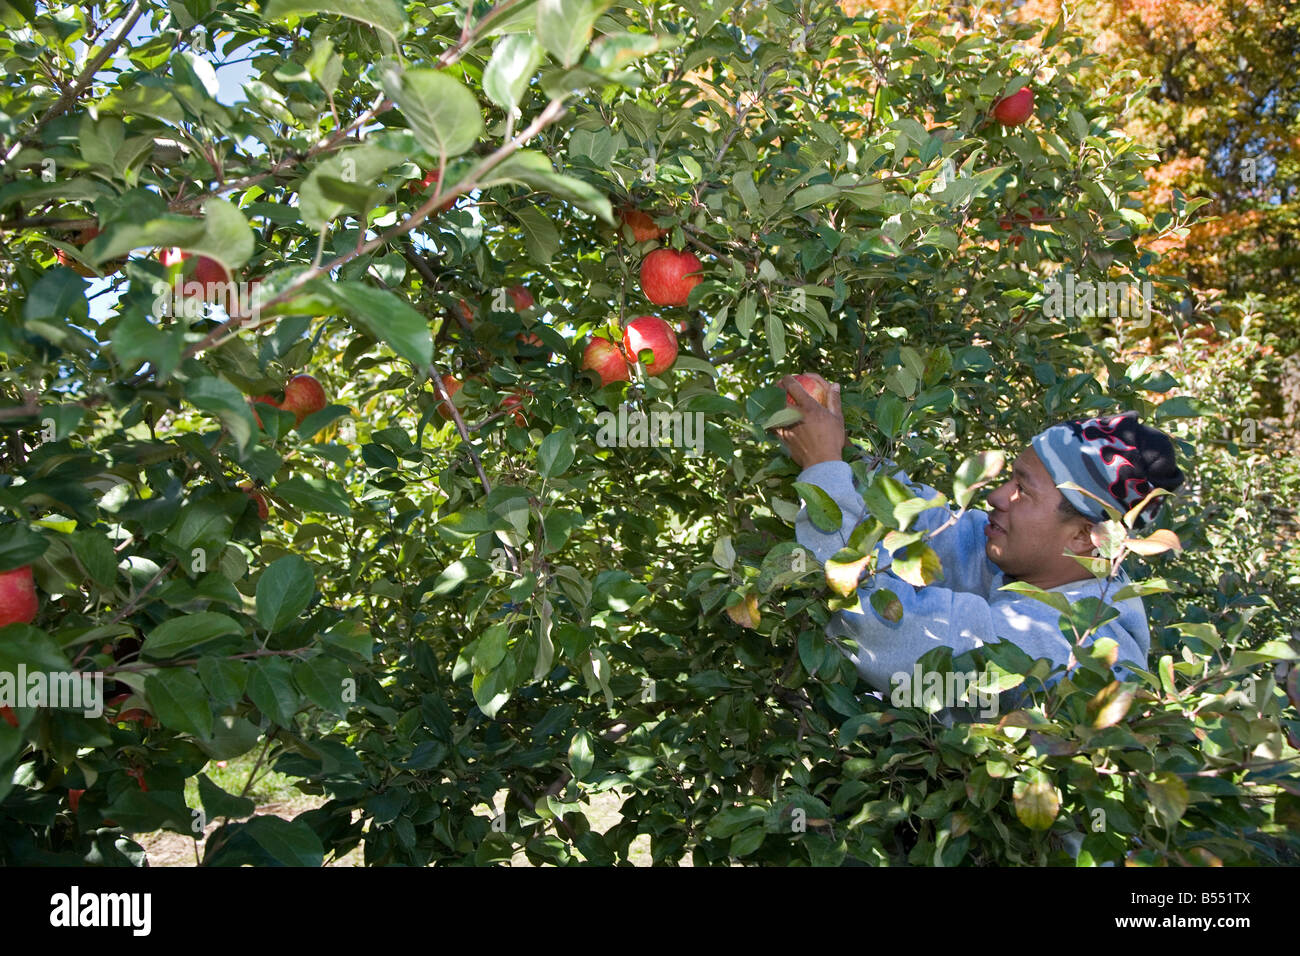 Migrant Workers in Apple Orchard - Stock Image